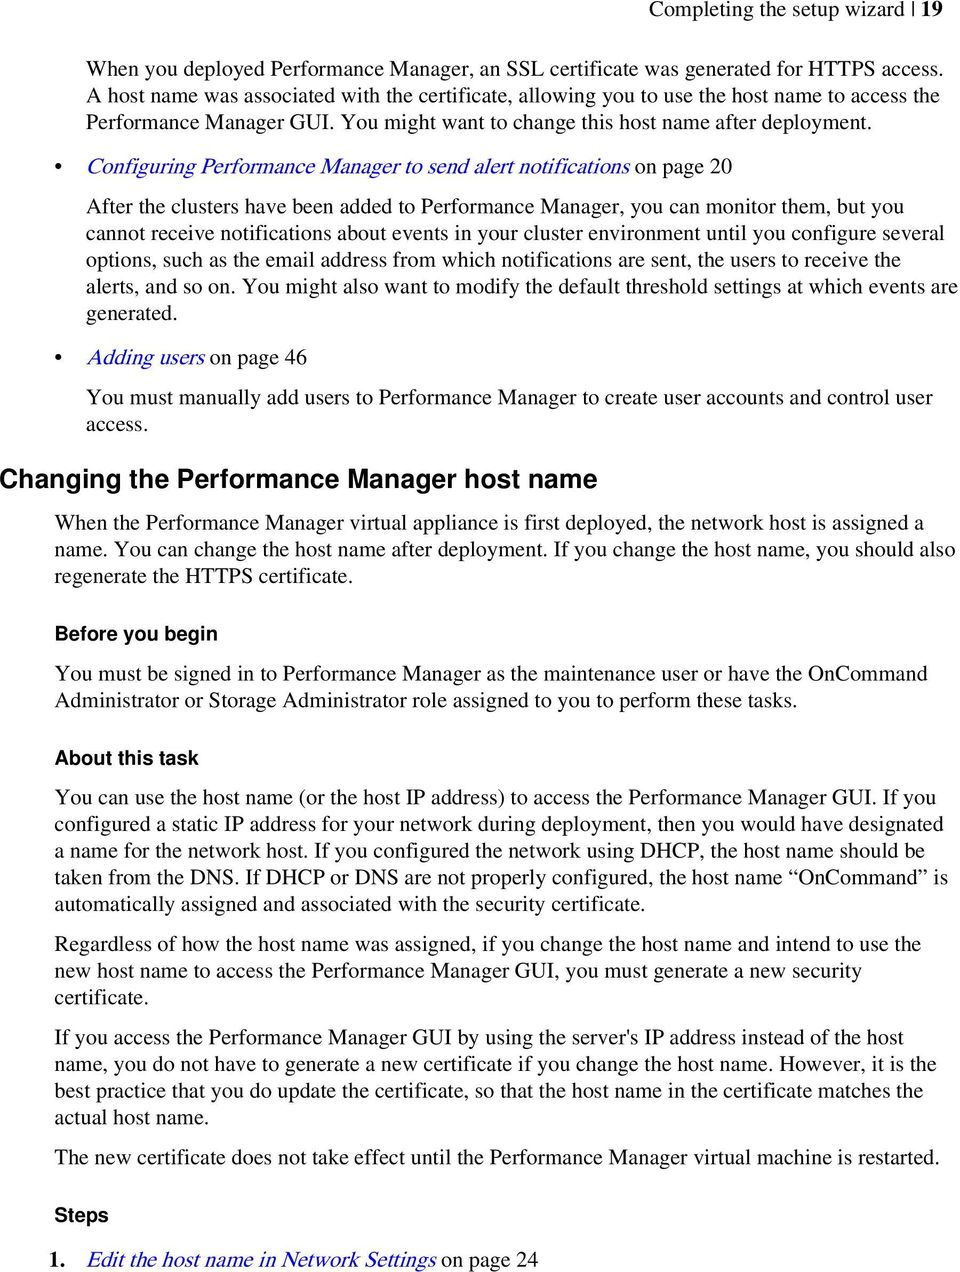 Configuring Performance Manager to send alert notifications on page 20 After the clusters have been added to Performance Manager, you can monitor them, but you cannot receive notifications about